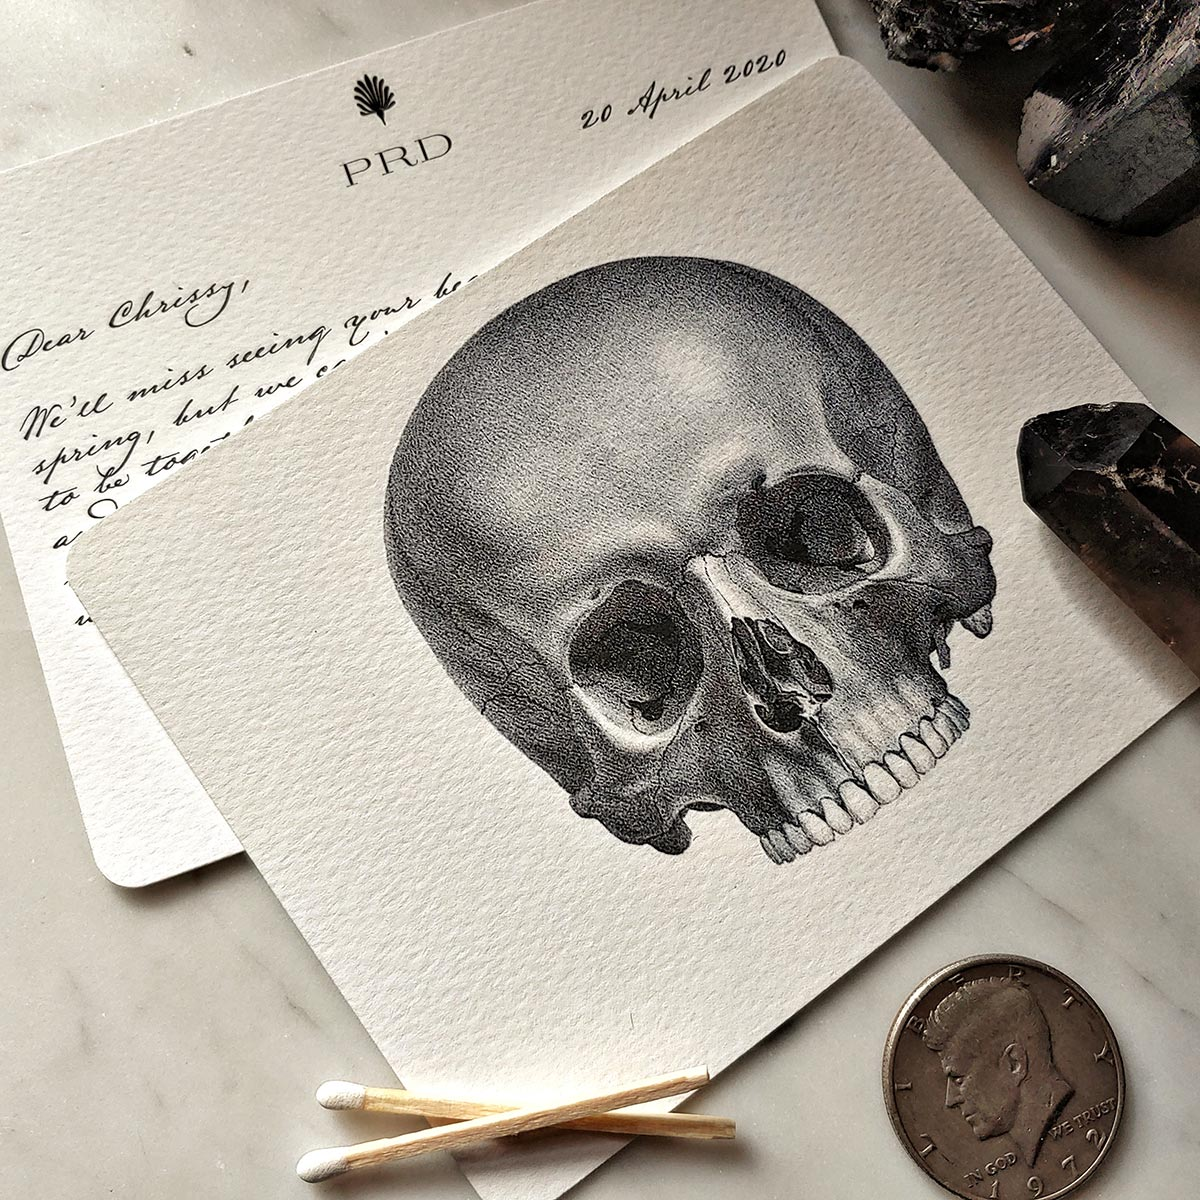 The Punctilious Mr. P's 'The Skull' note cards showing the message in old kinderhook fonto n marble table with beautiful crystals in background